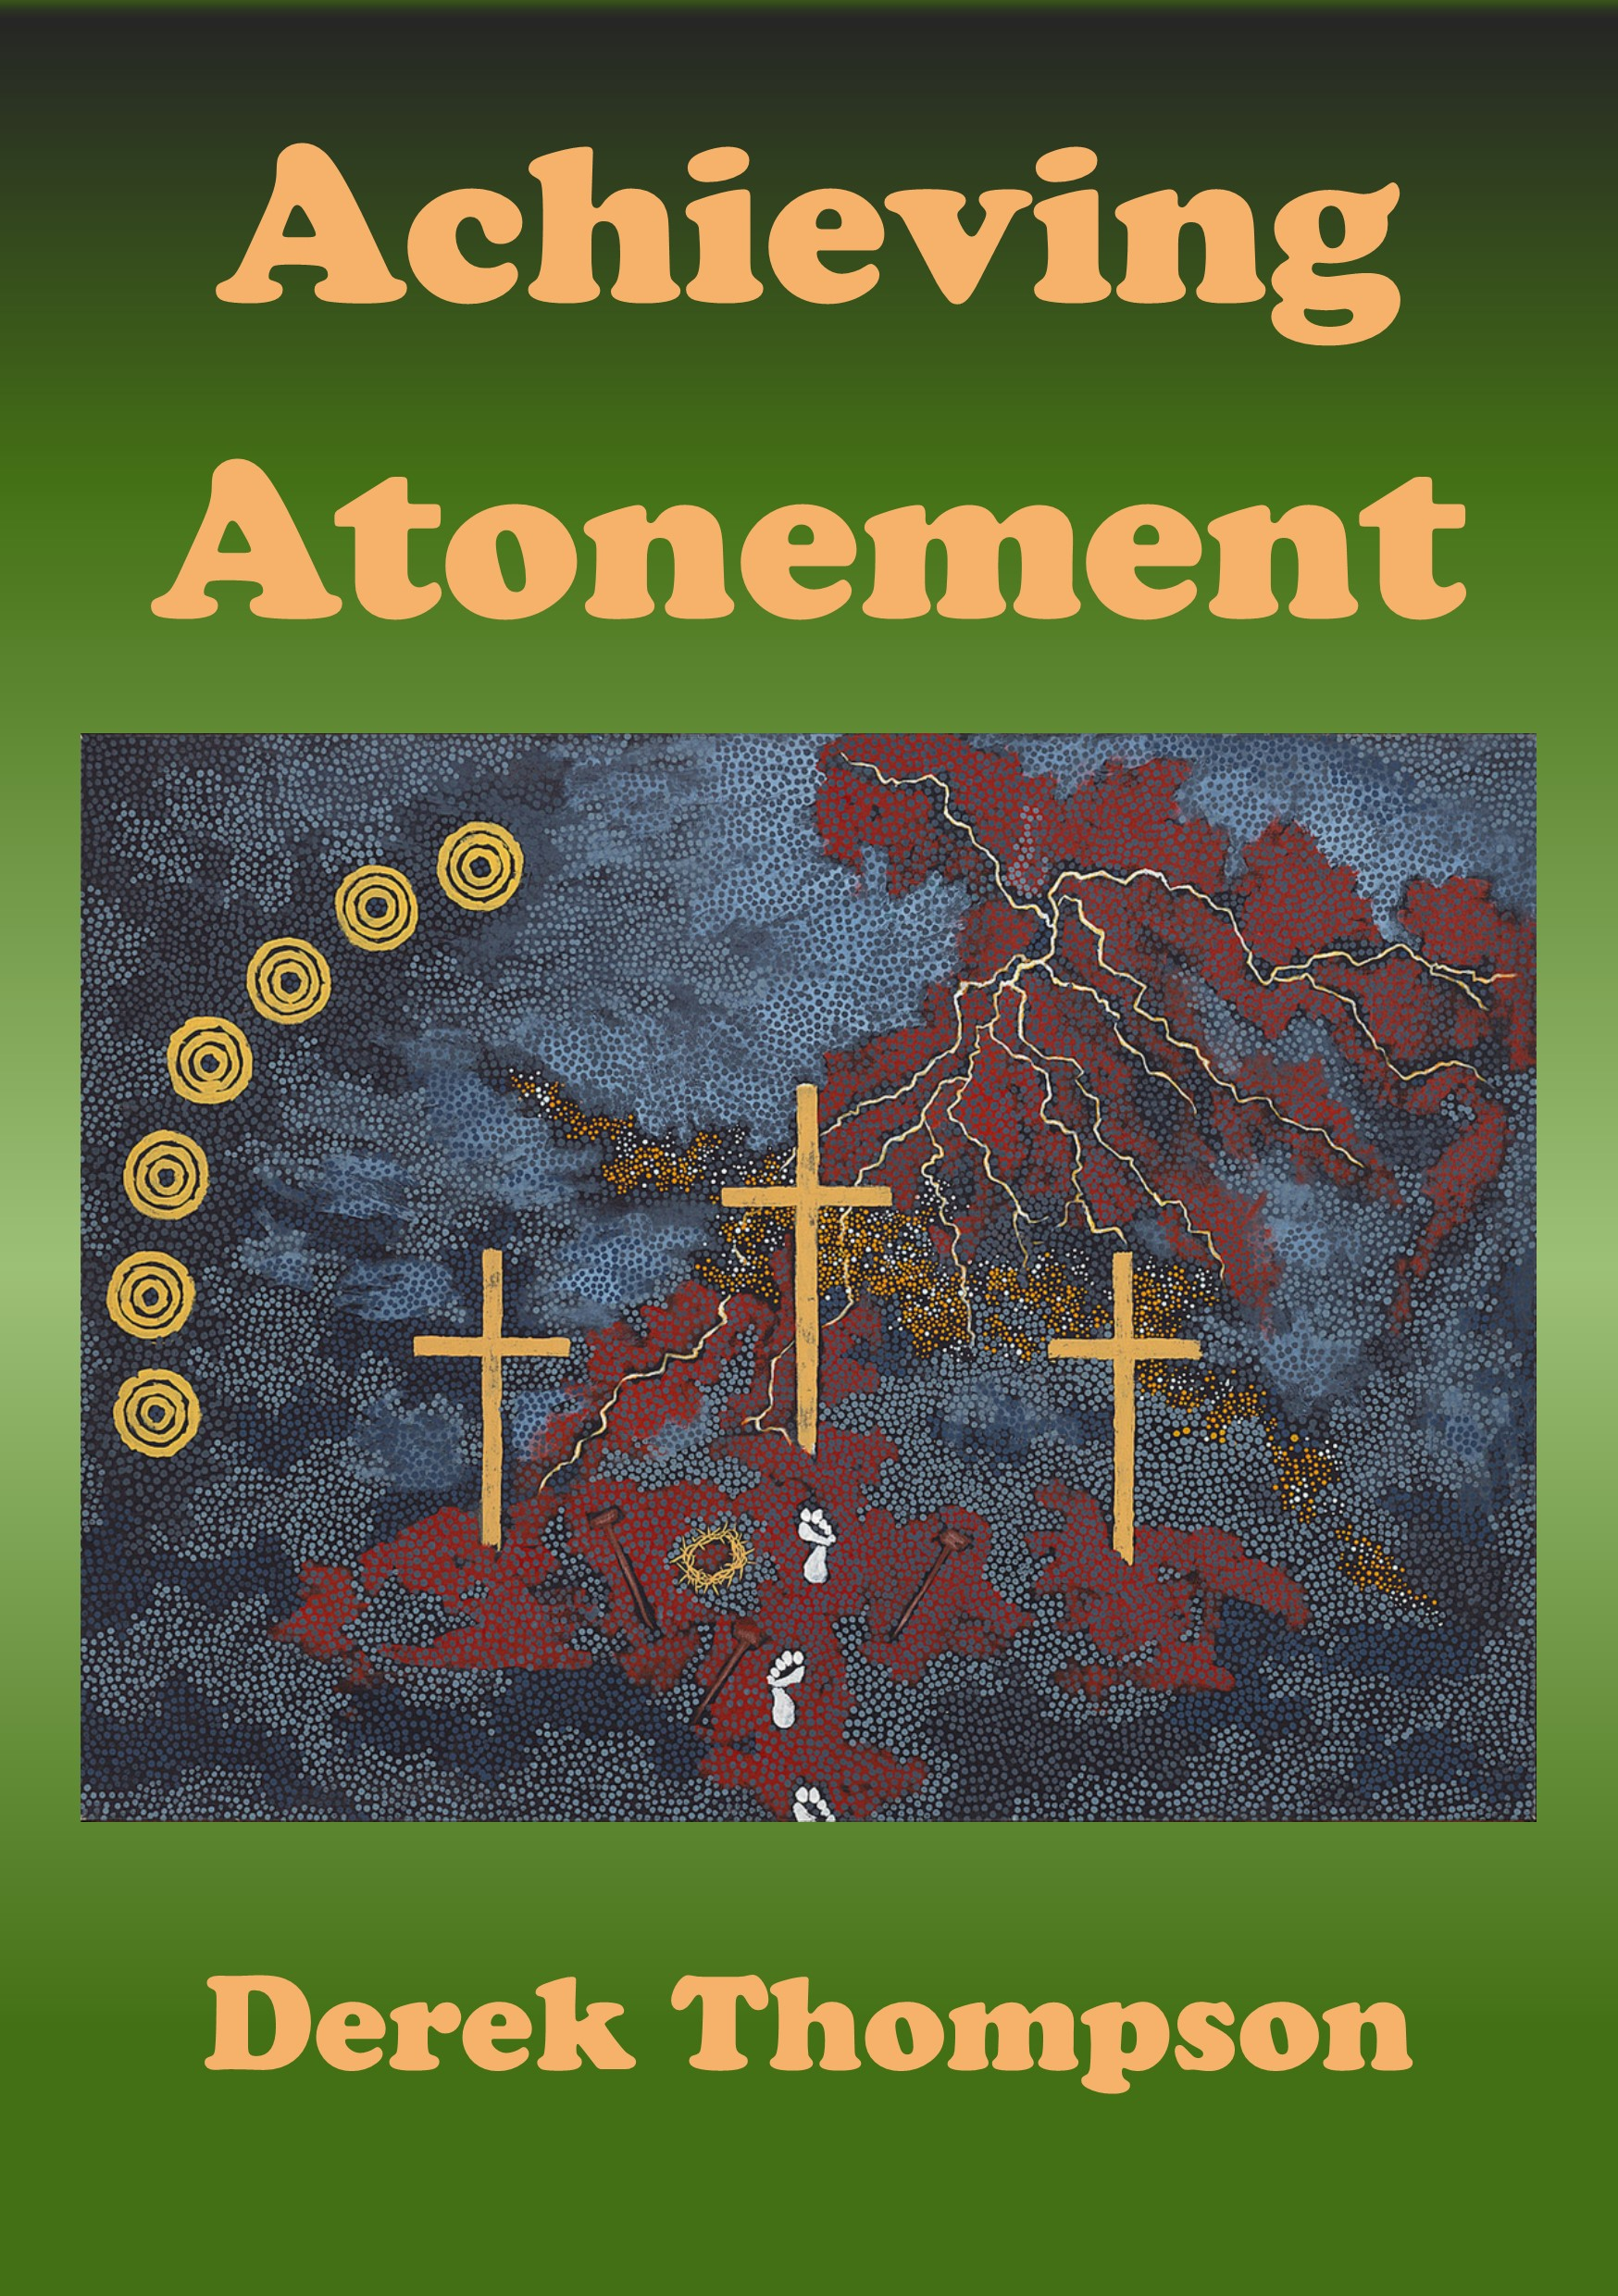 Download ebook atonement